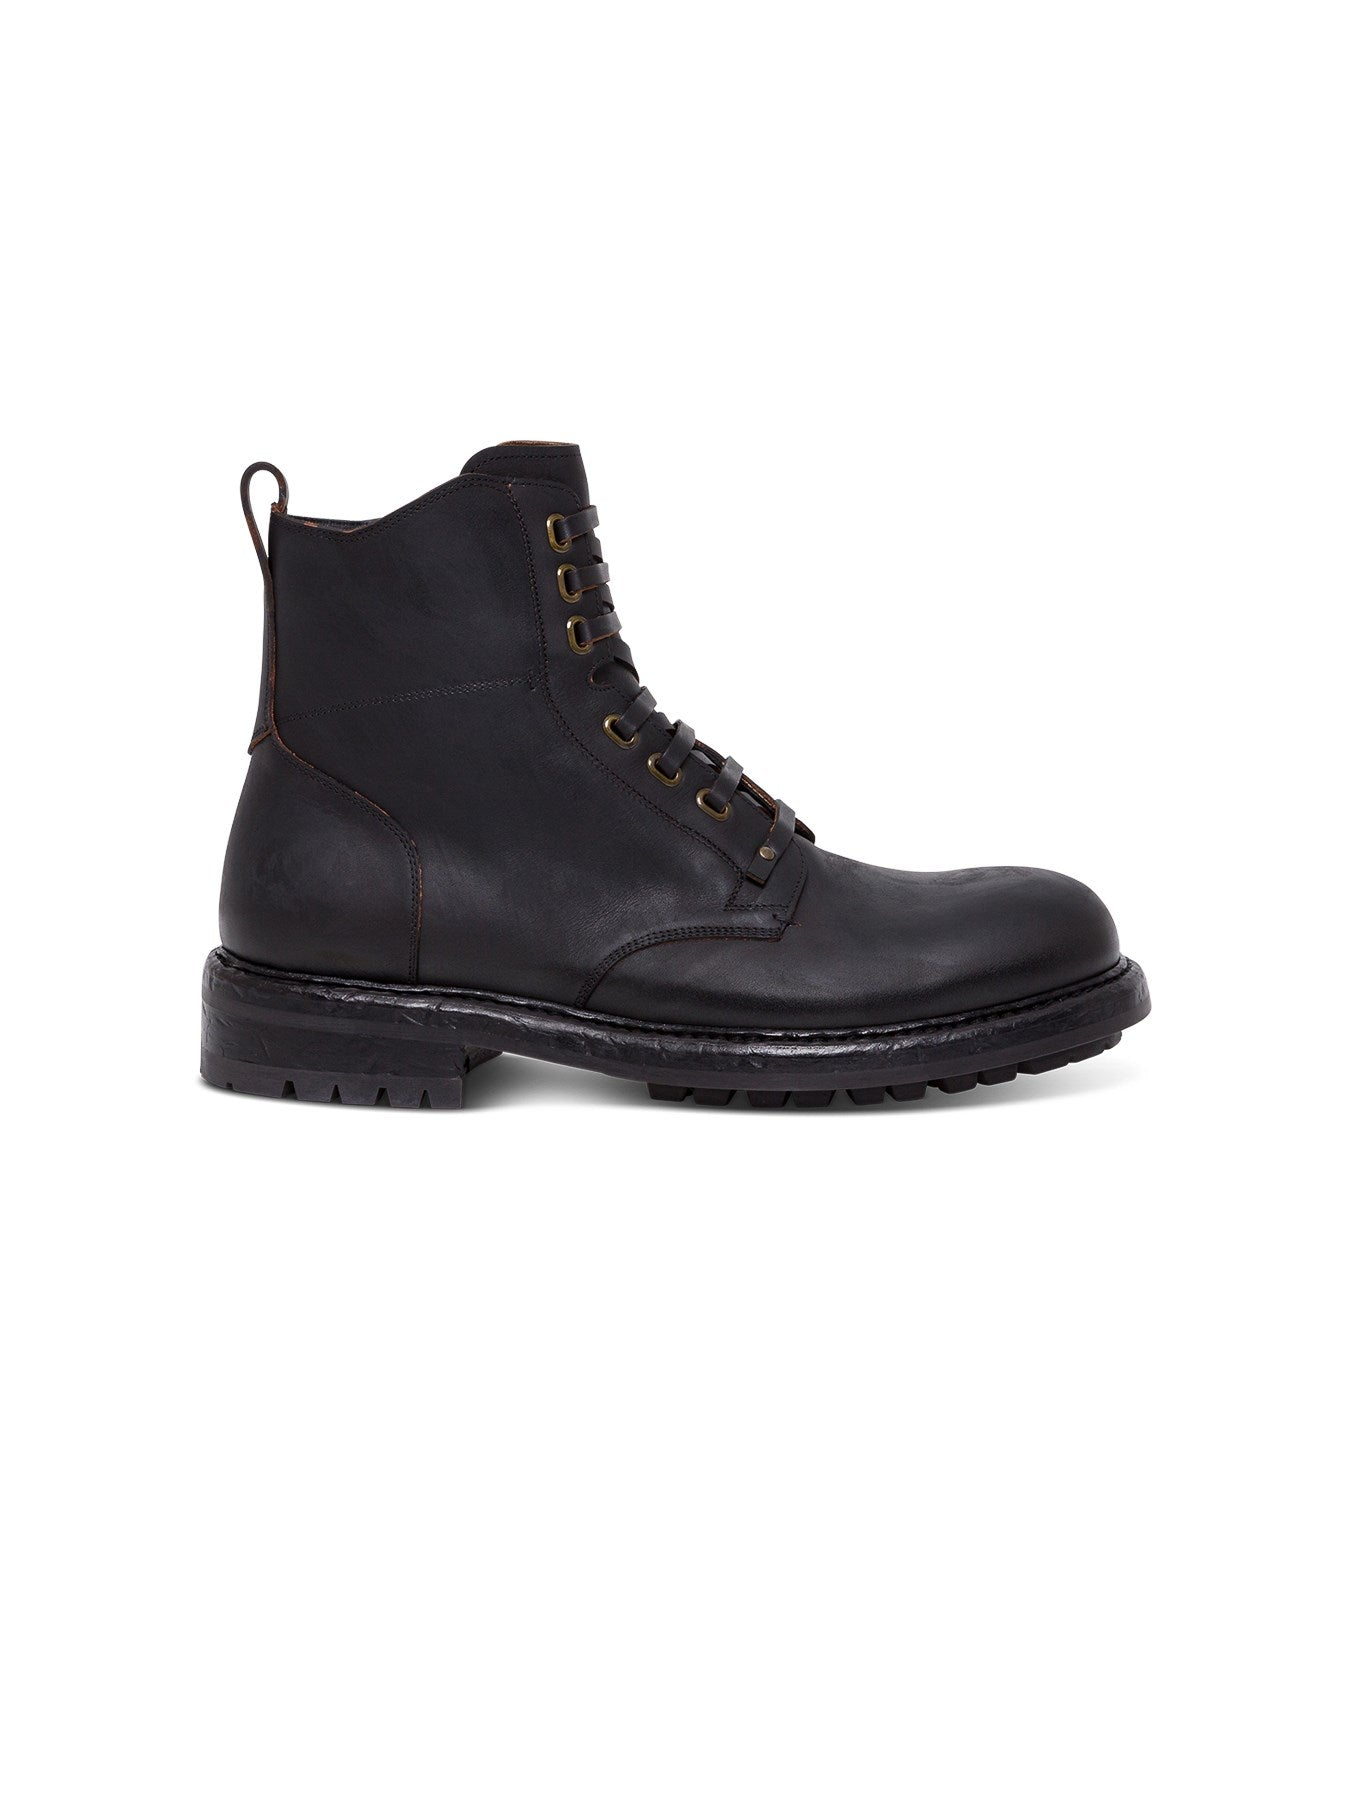 DOLCE & GABBANA LEATHER ANKLE BOOT